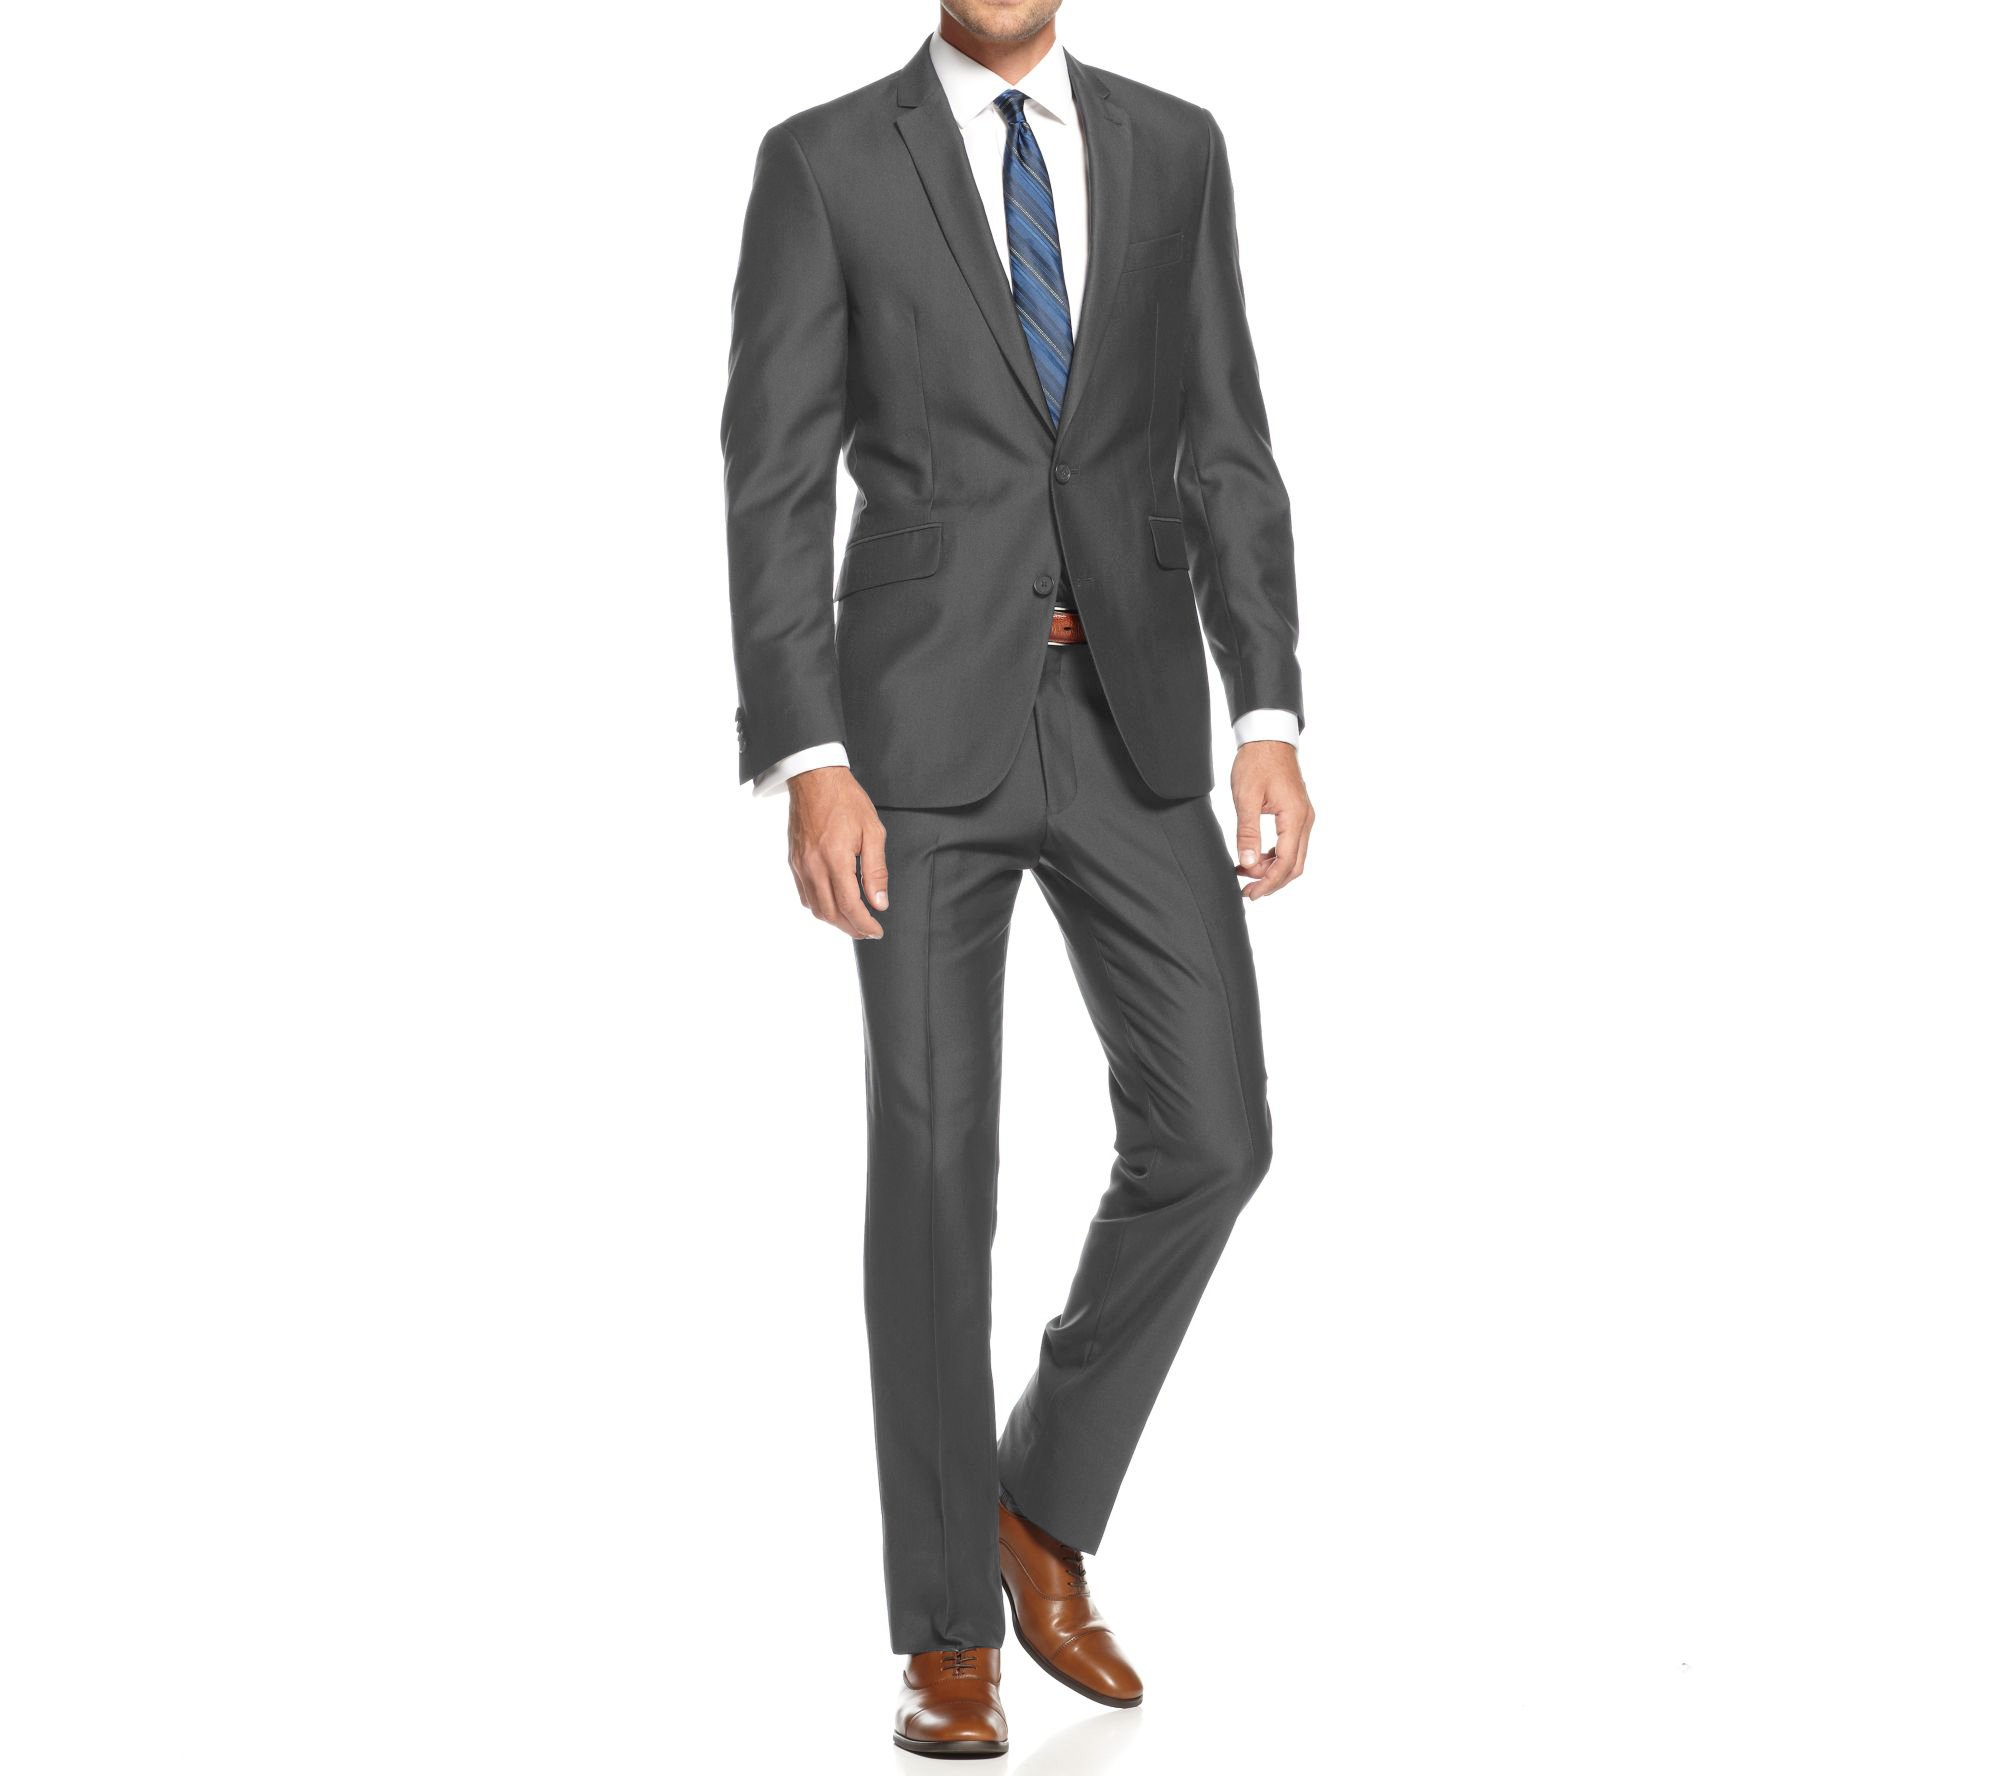 Braveman Mens Slim Fit Single Breasted 2 Piece Suit, Charcoal, Size 50R/44W